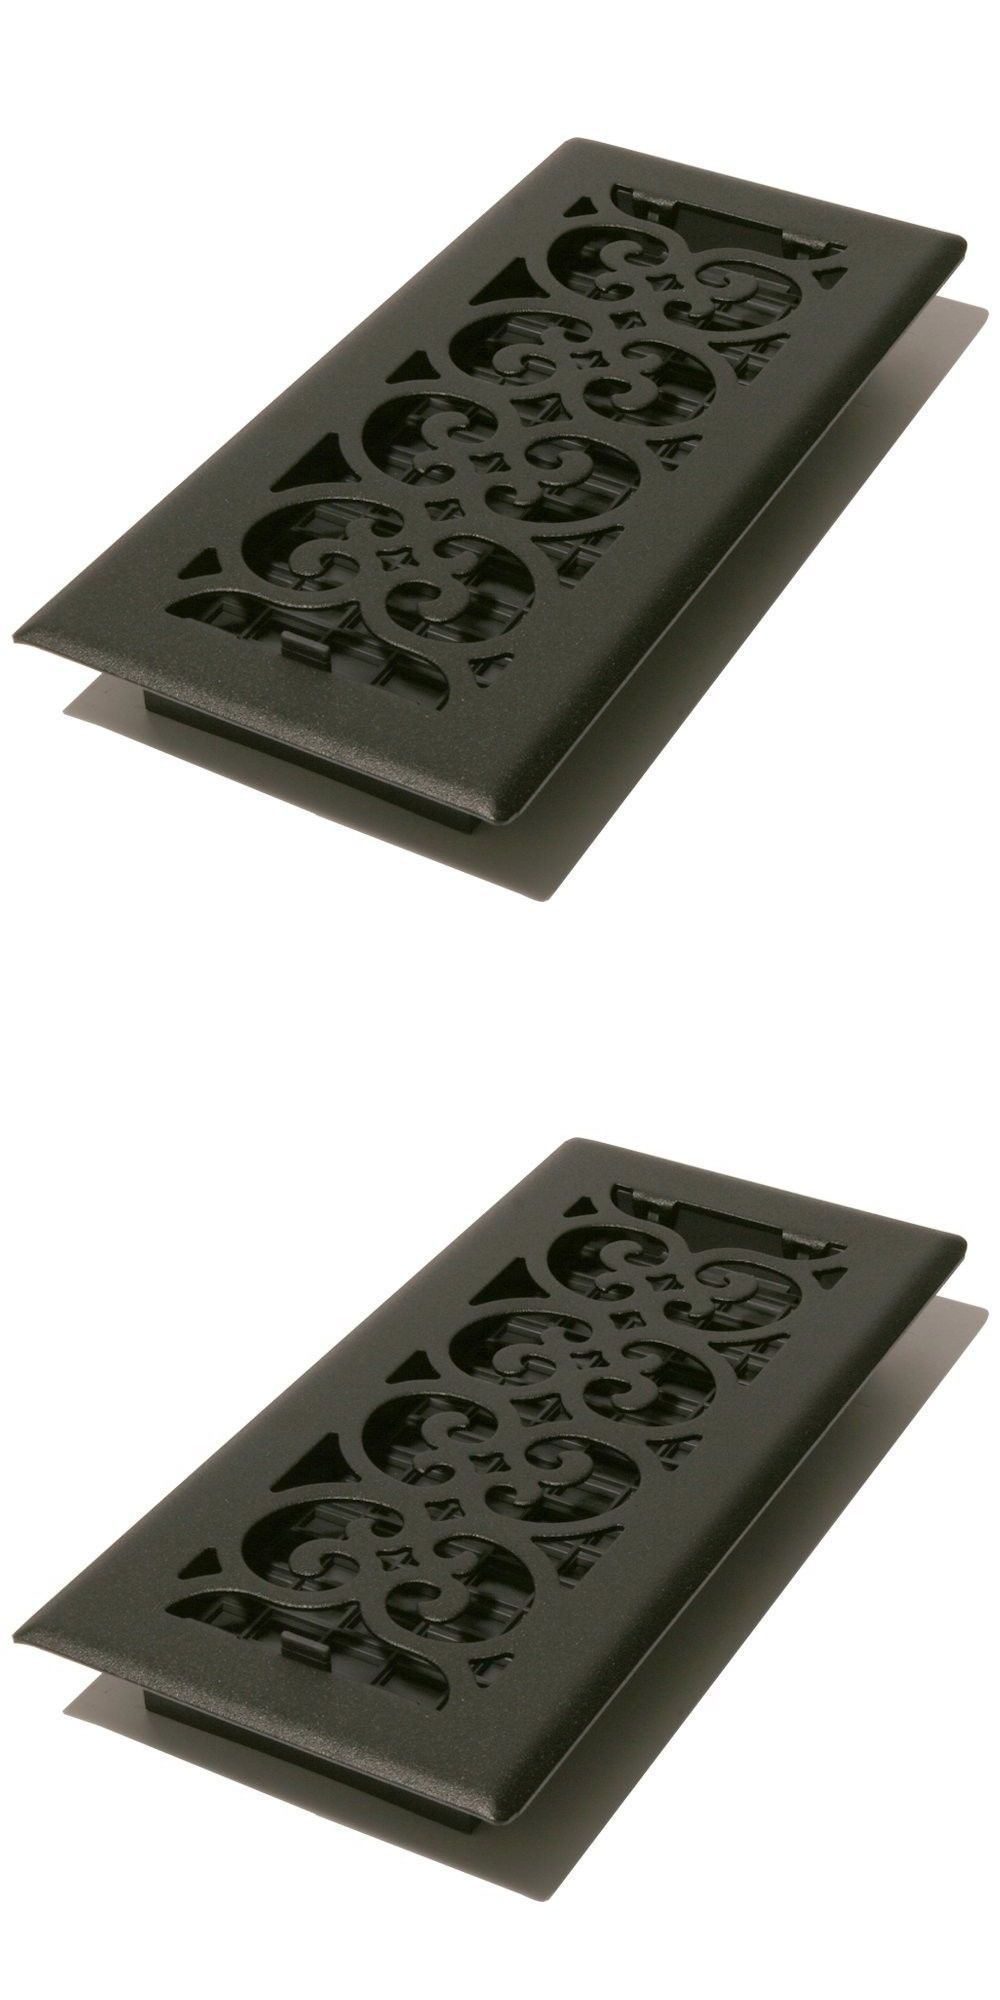 Andirons Grates and Firedogs 79648: Decor Grates Scroll